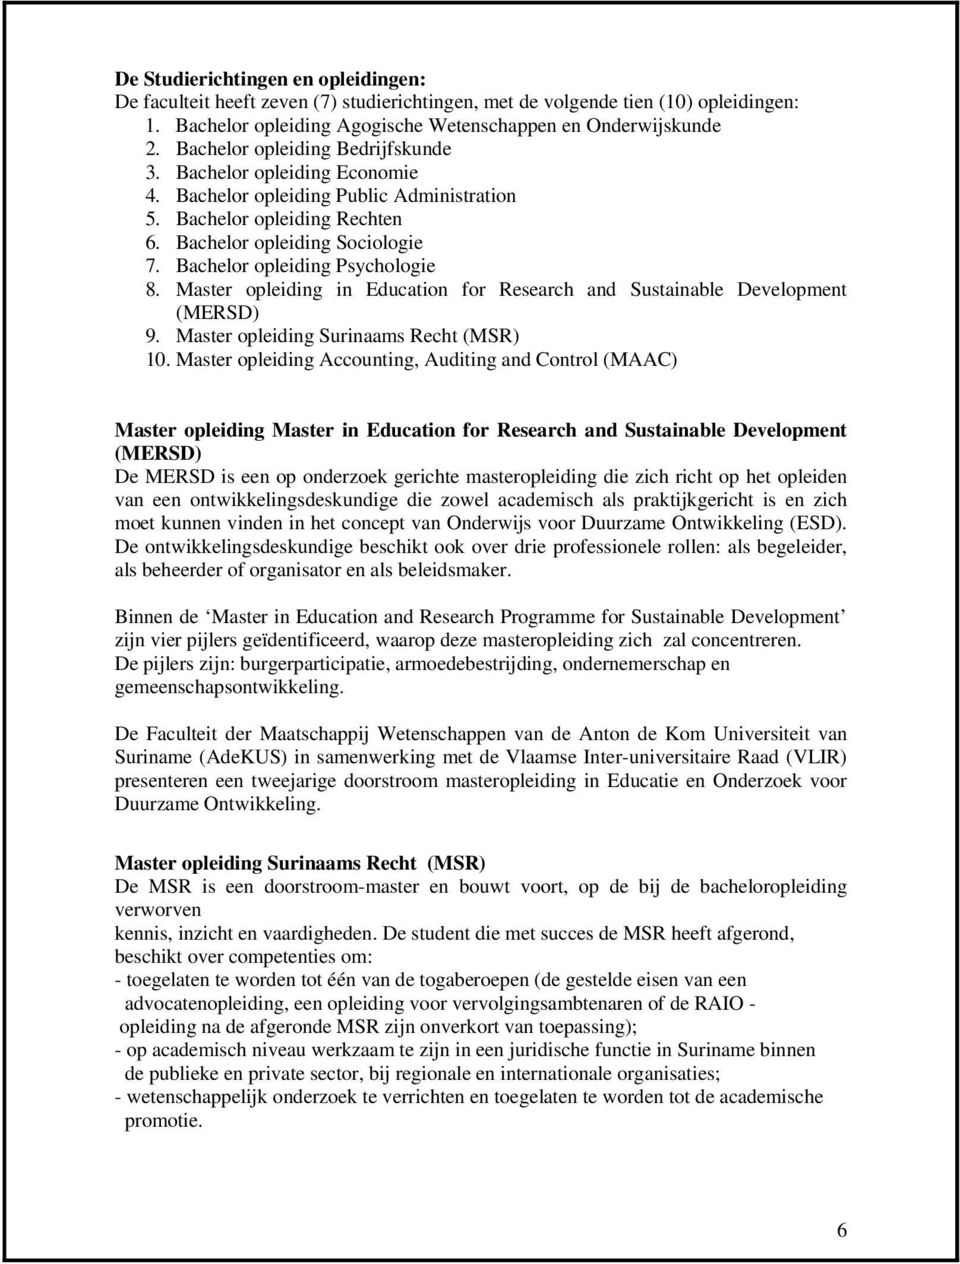 Bachelor opleiding Psychologie 8. Master opleiding in Education for Research and Sustainable Development (MERSD) 9. Master opleiding Surinaams Recht (MSR) 10.